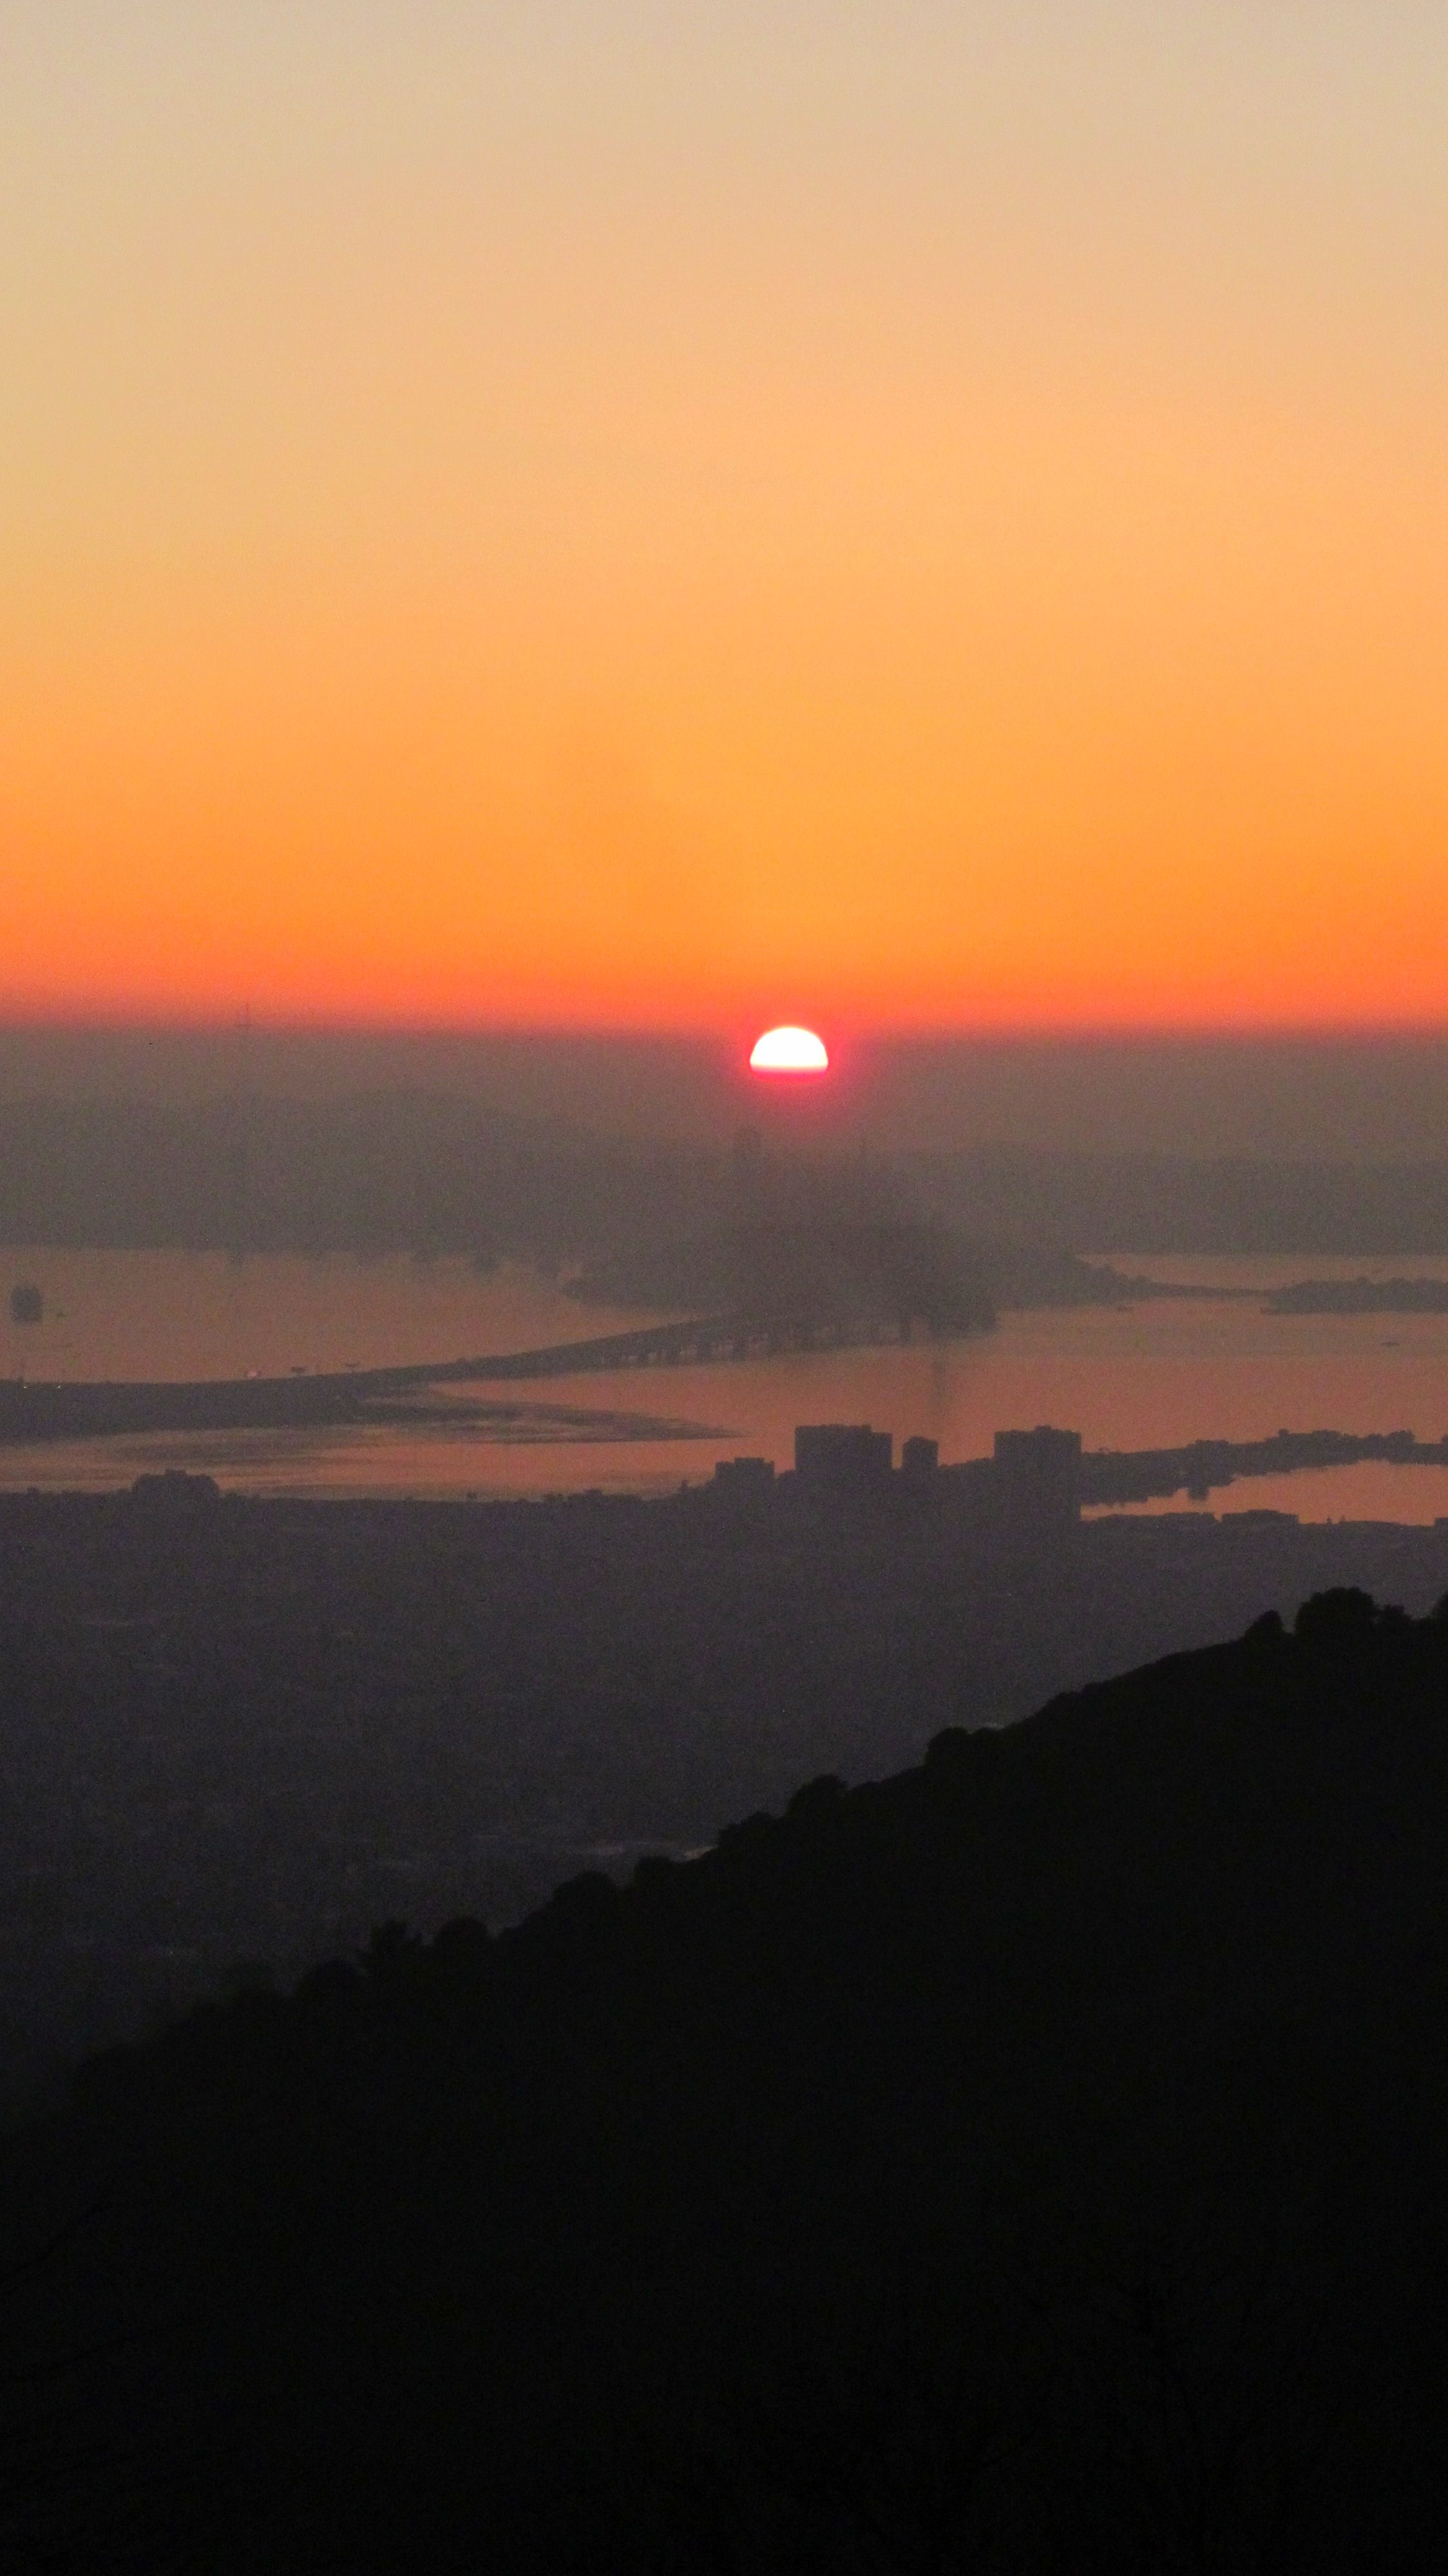 Sunset in Northern California need Florida state parks